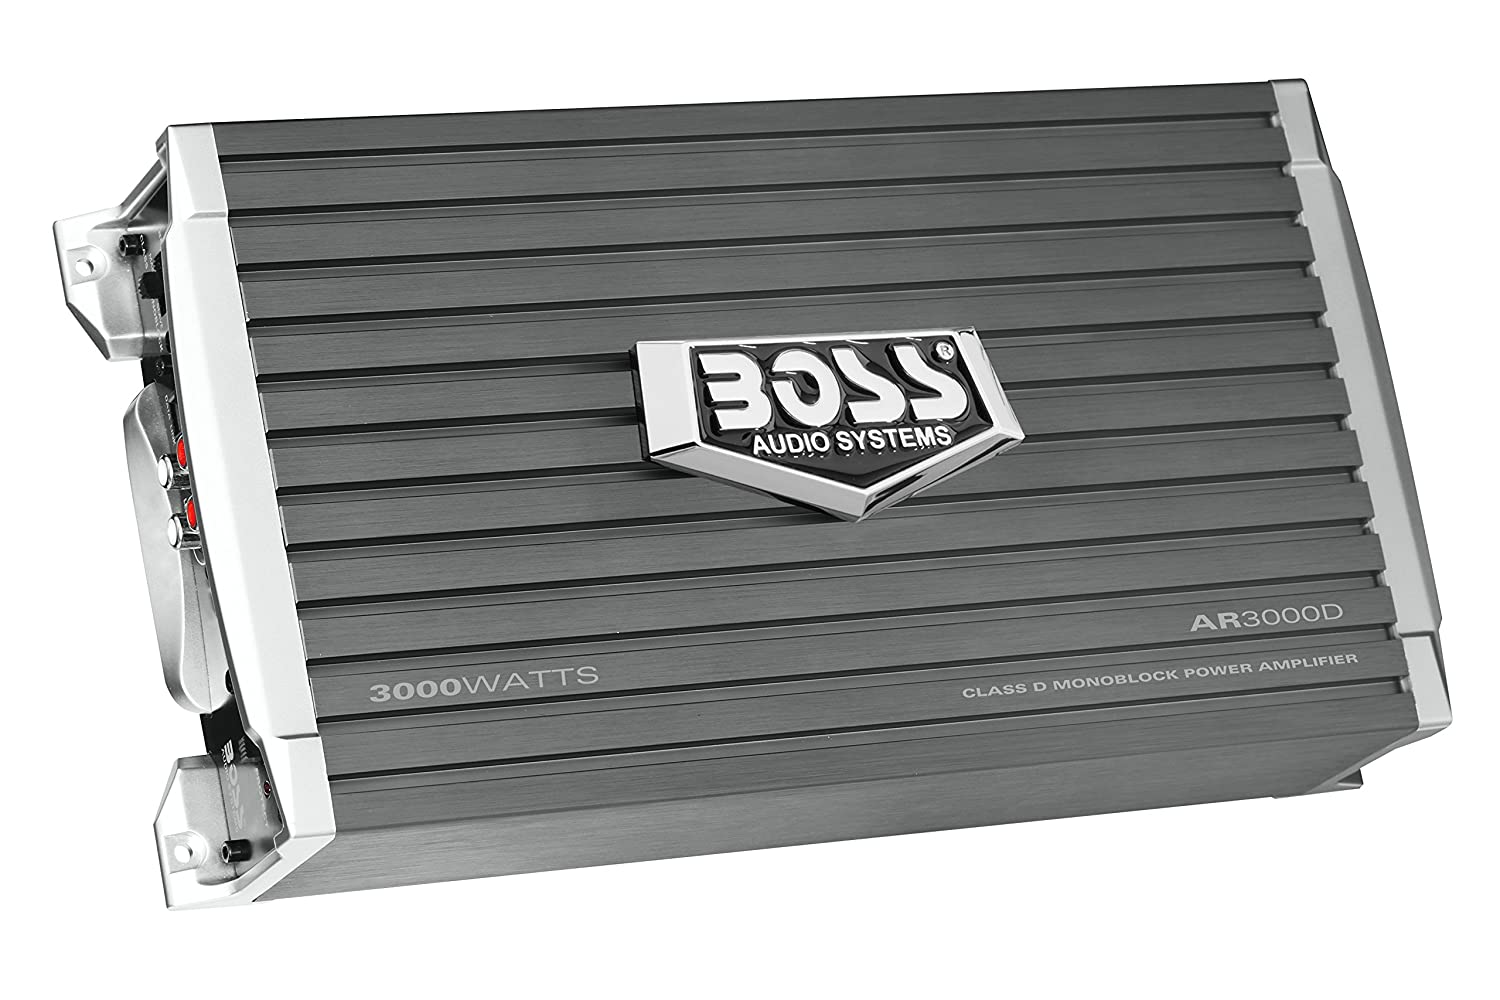 Boss Audio Ar3000d Car Amplifier 3000 Watts 1 2 4 Ohm Gauge High Quality Lifier Power Wire Wiring Stable Class D Monoblock Remote Subwoofer Control Electronics